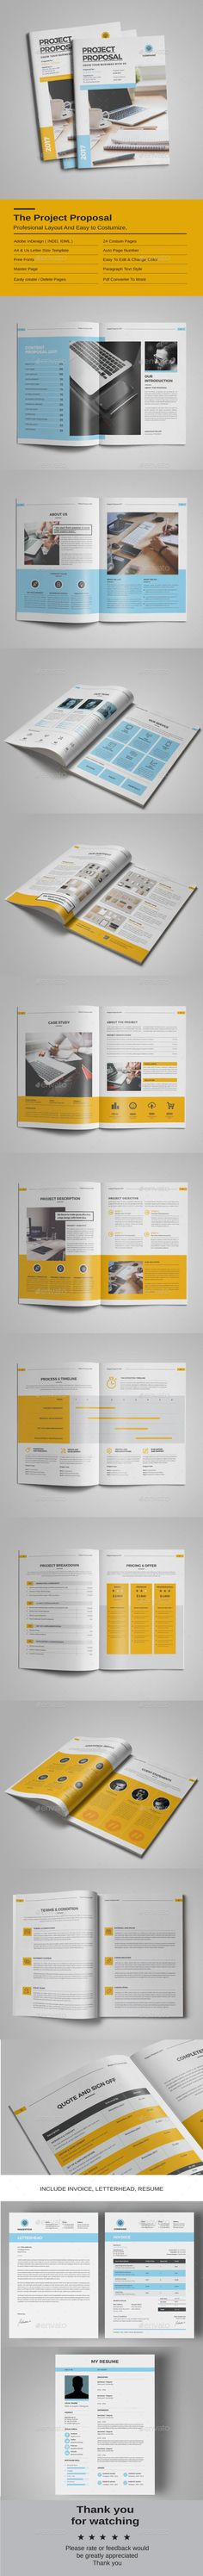 Web Design Proposal Proposal templates, Proposals and Brochures - what is in a design proposal